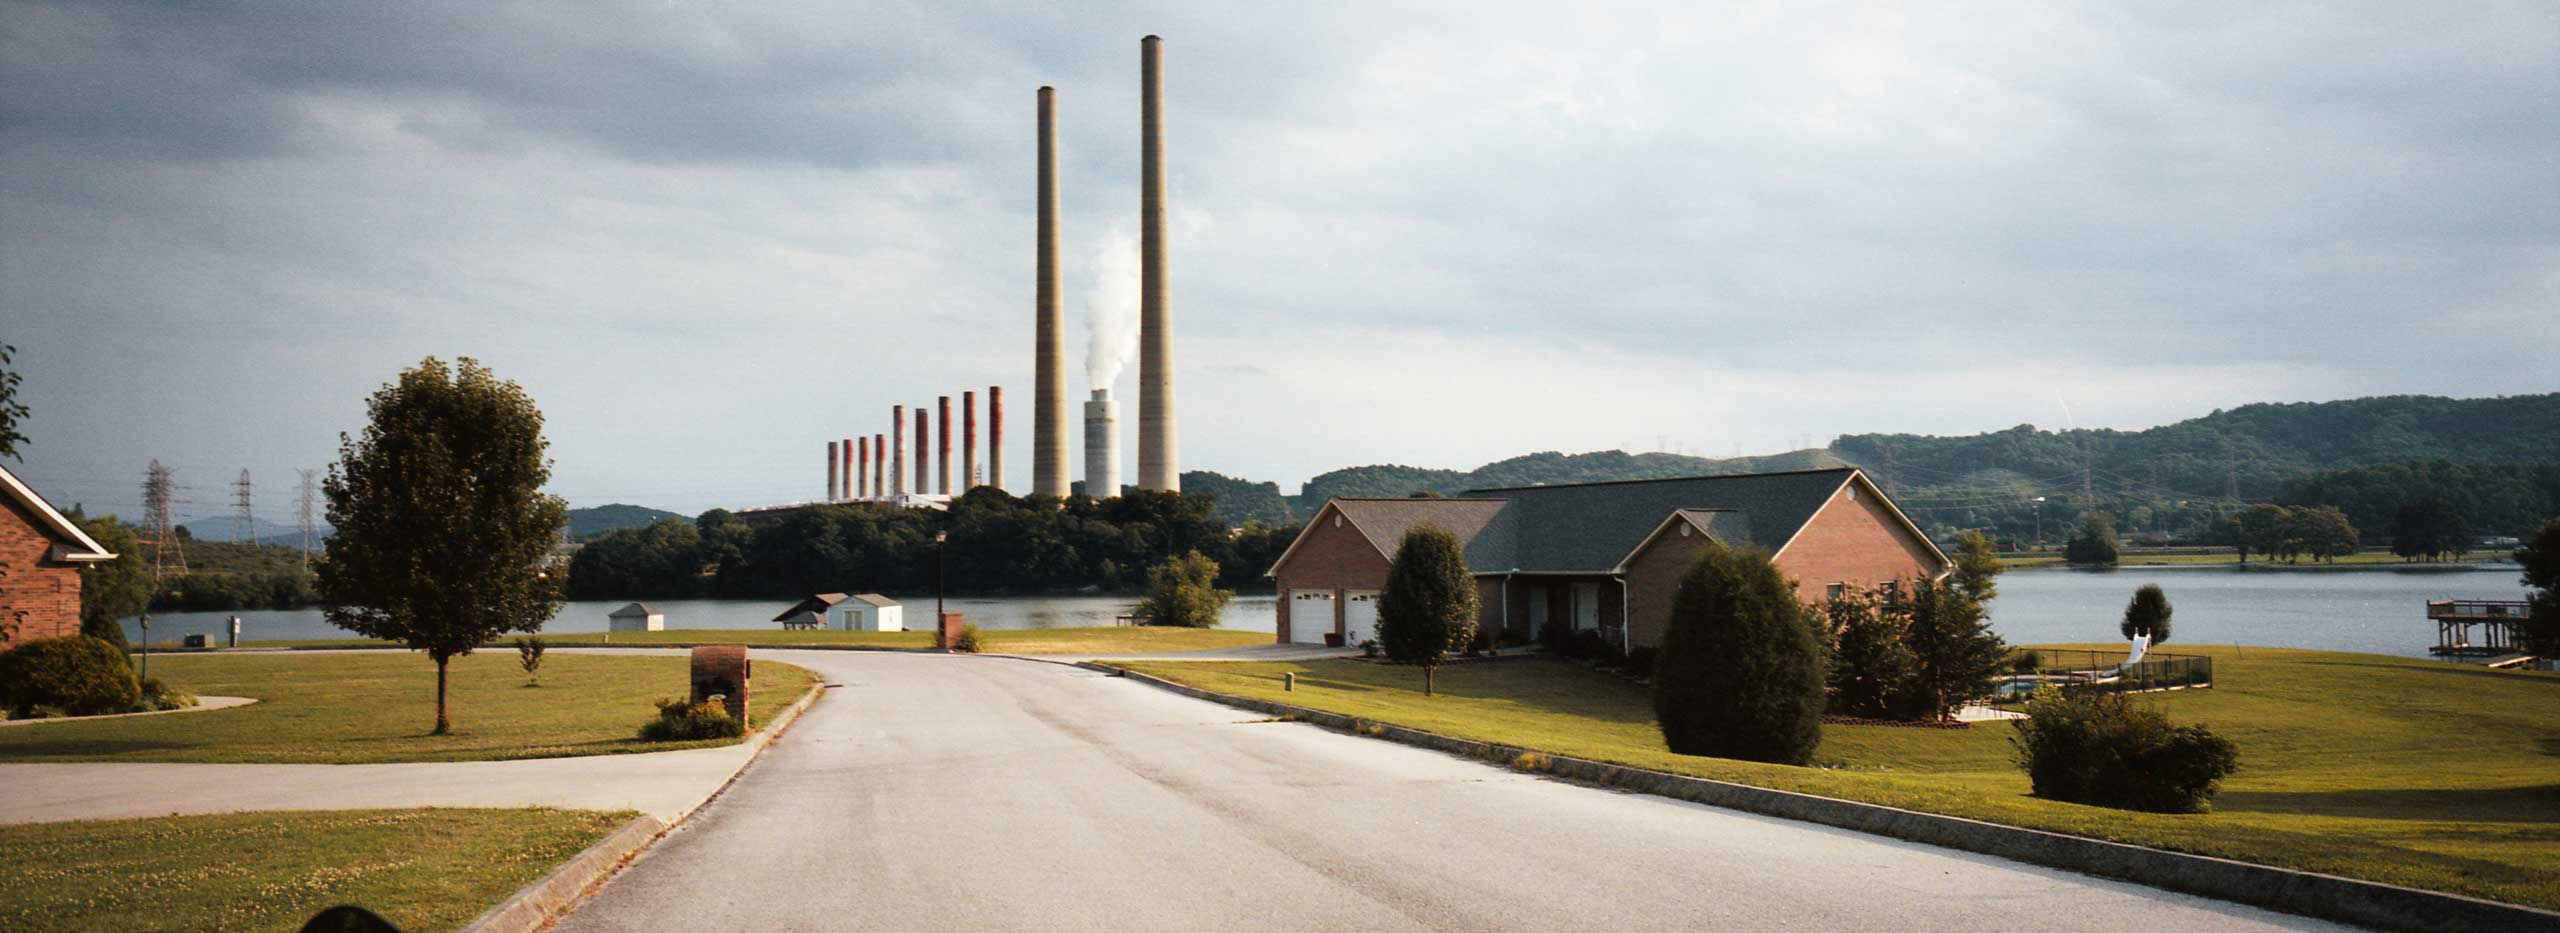 Kingston Fossil Plant on Watts Bar Lake, Tennessee. June 5th 2012